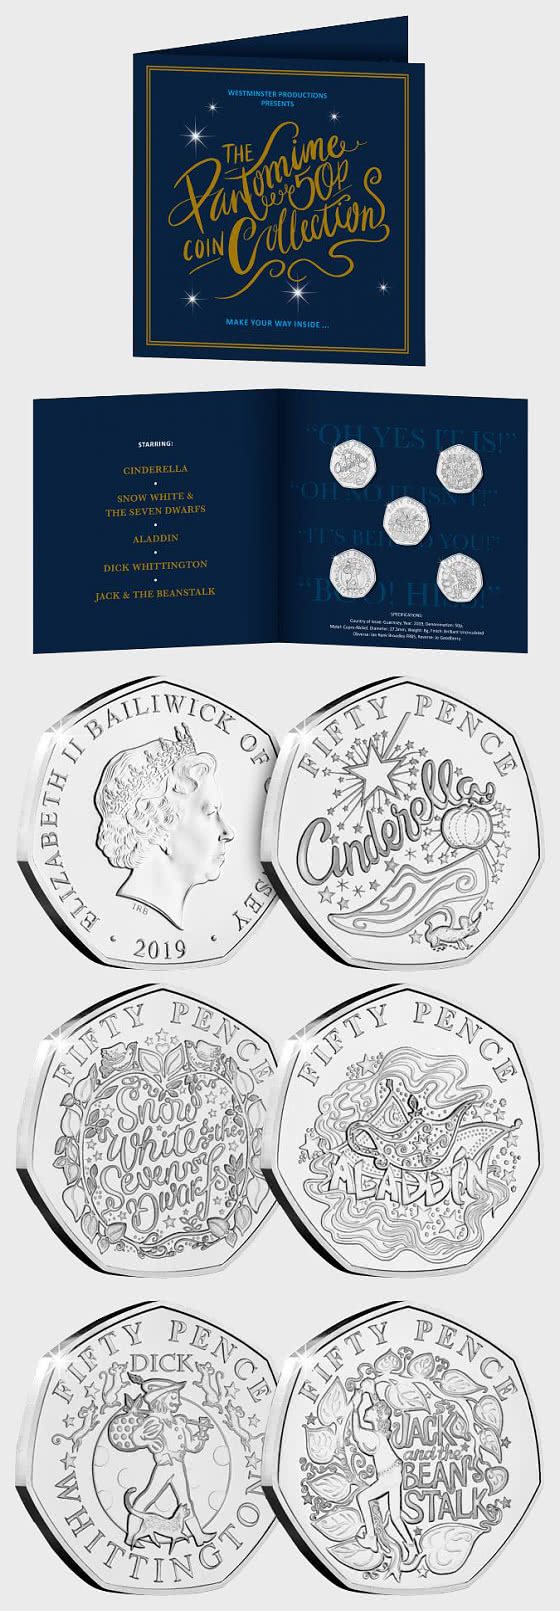 GUERNSEY - The Christmas Pantomime 50p Coin Set - Commemorative